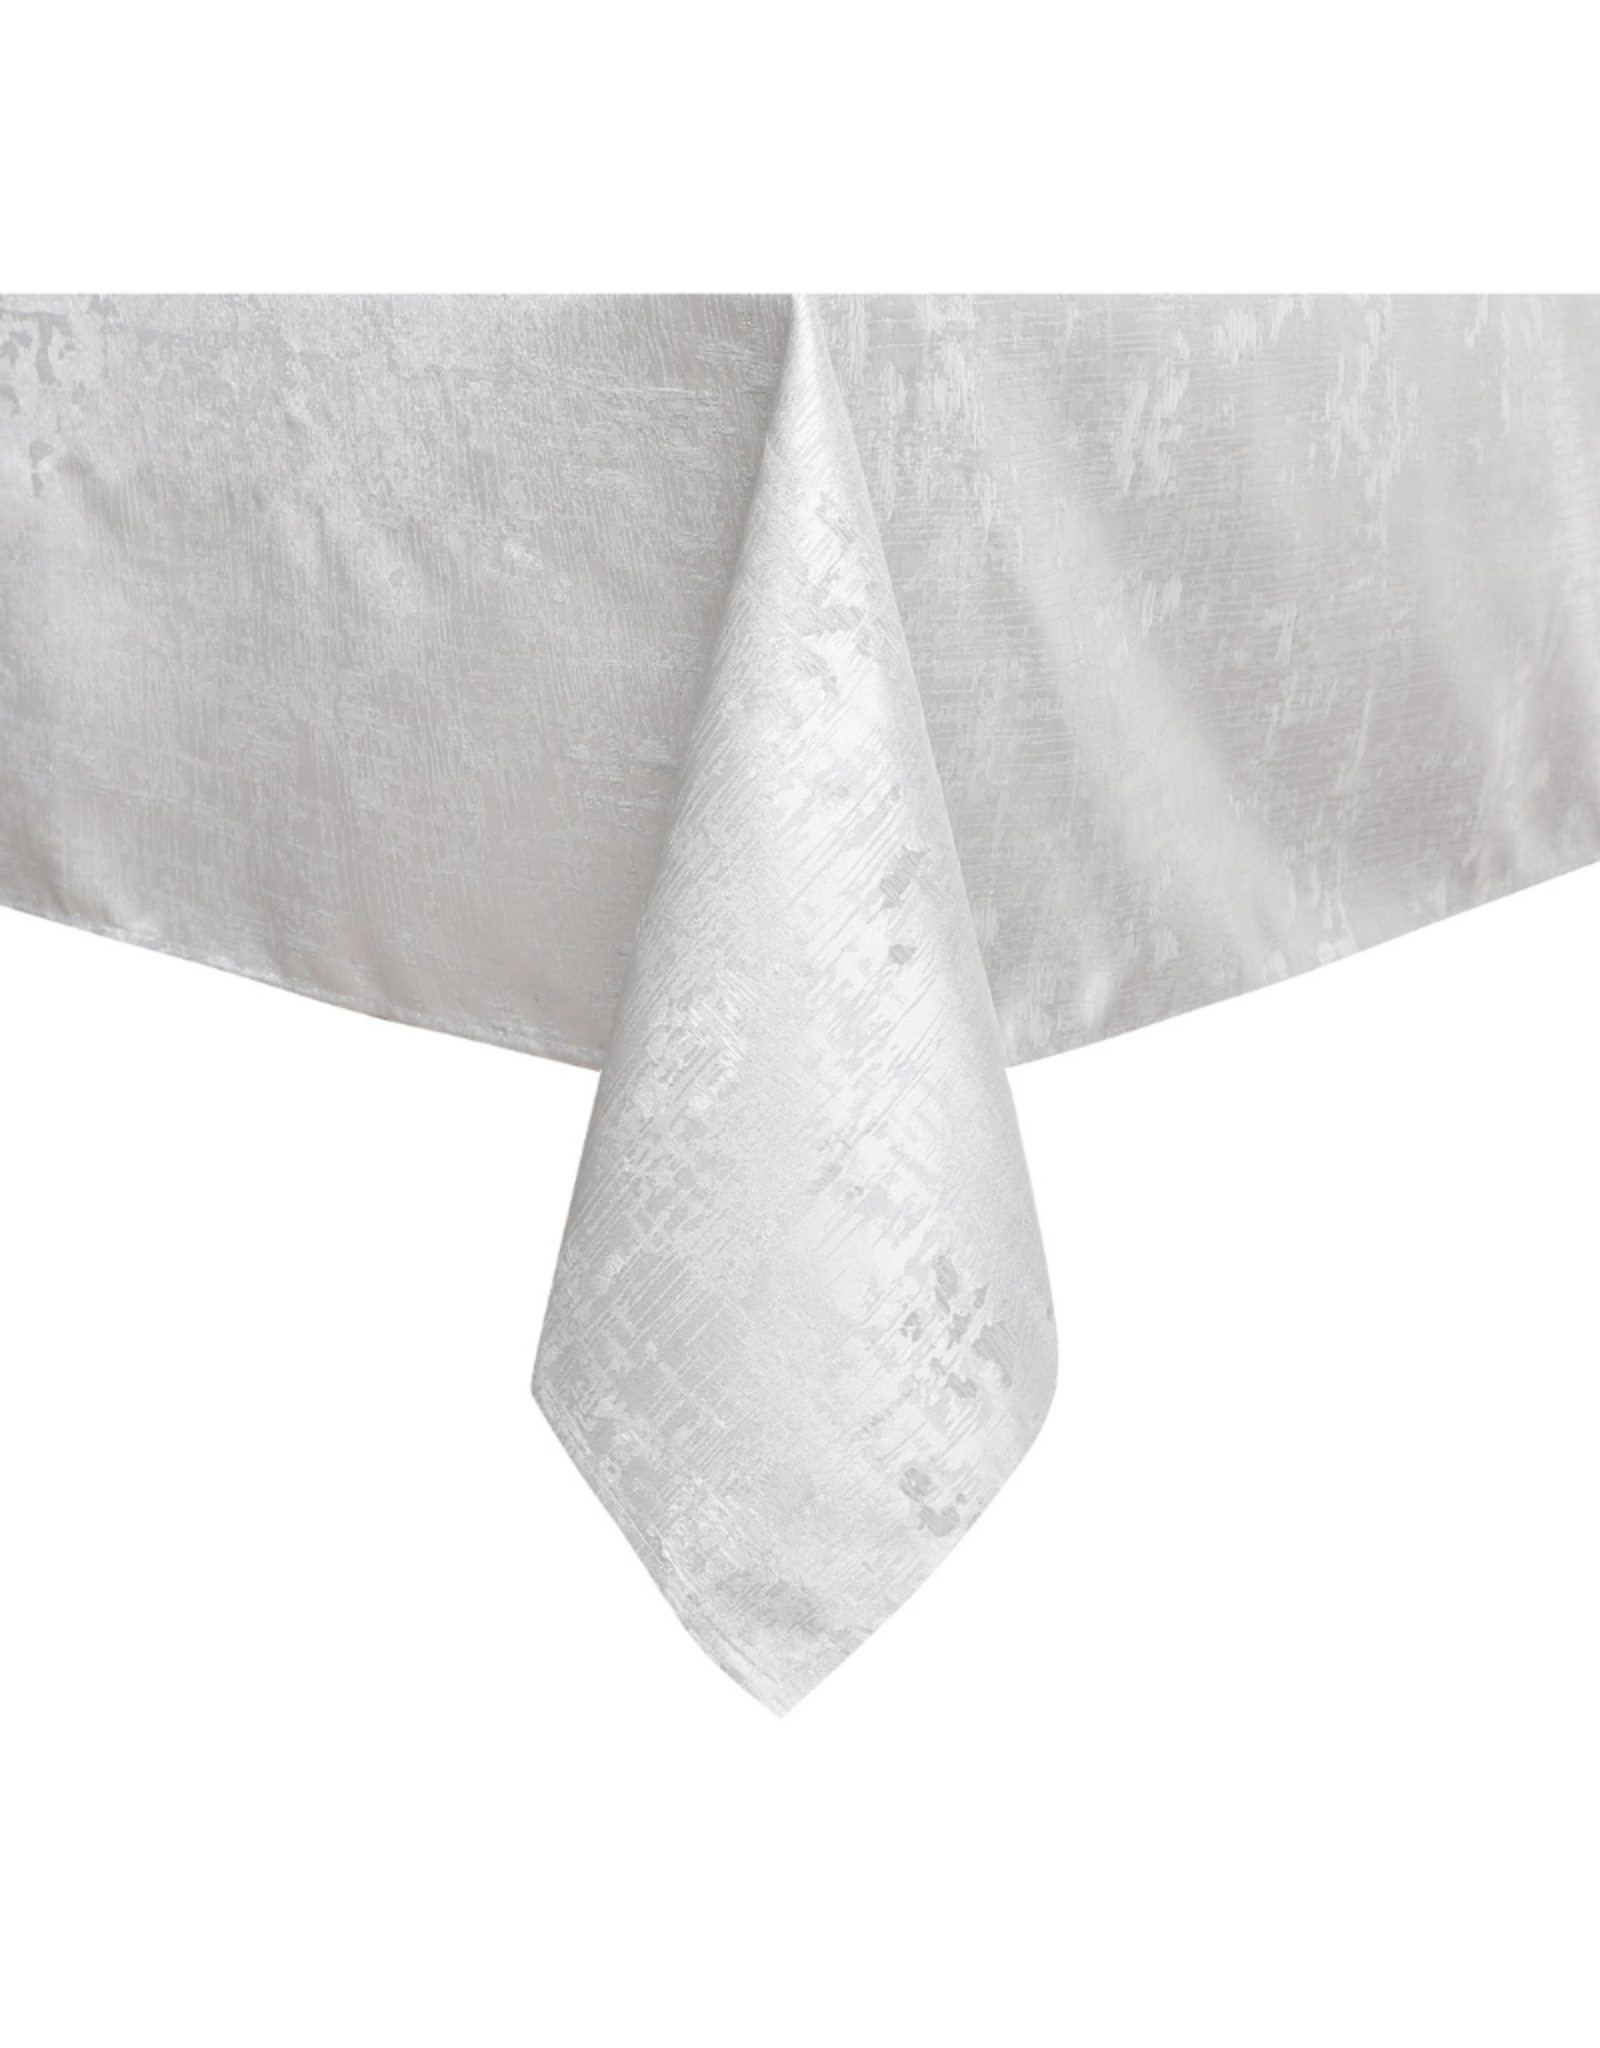 Jacquard Abstract White & Silver Tablecloth #1311